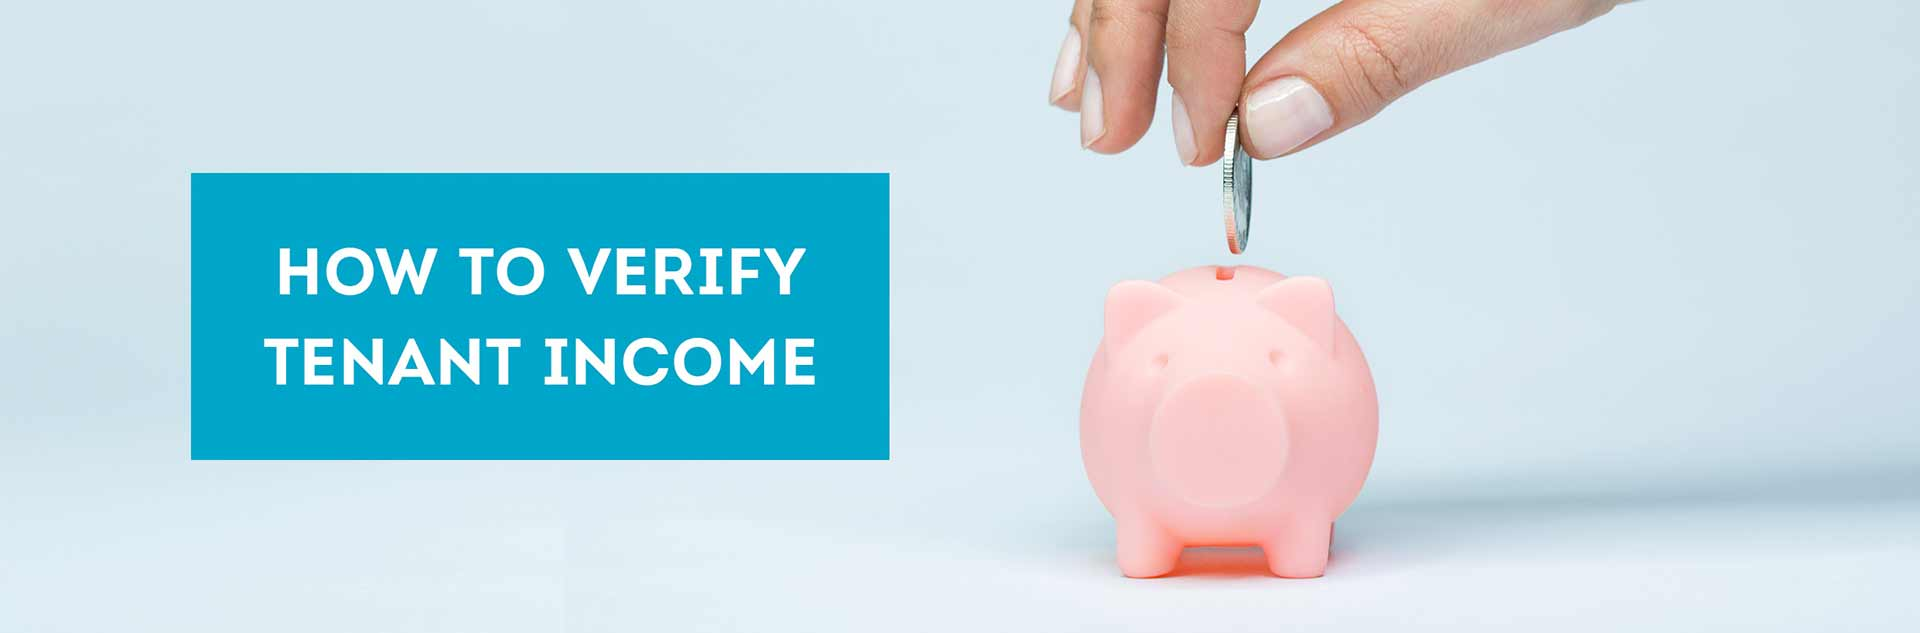 how to verify renter income